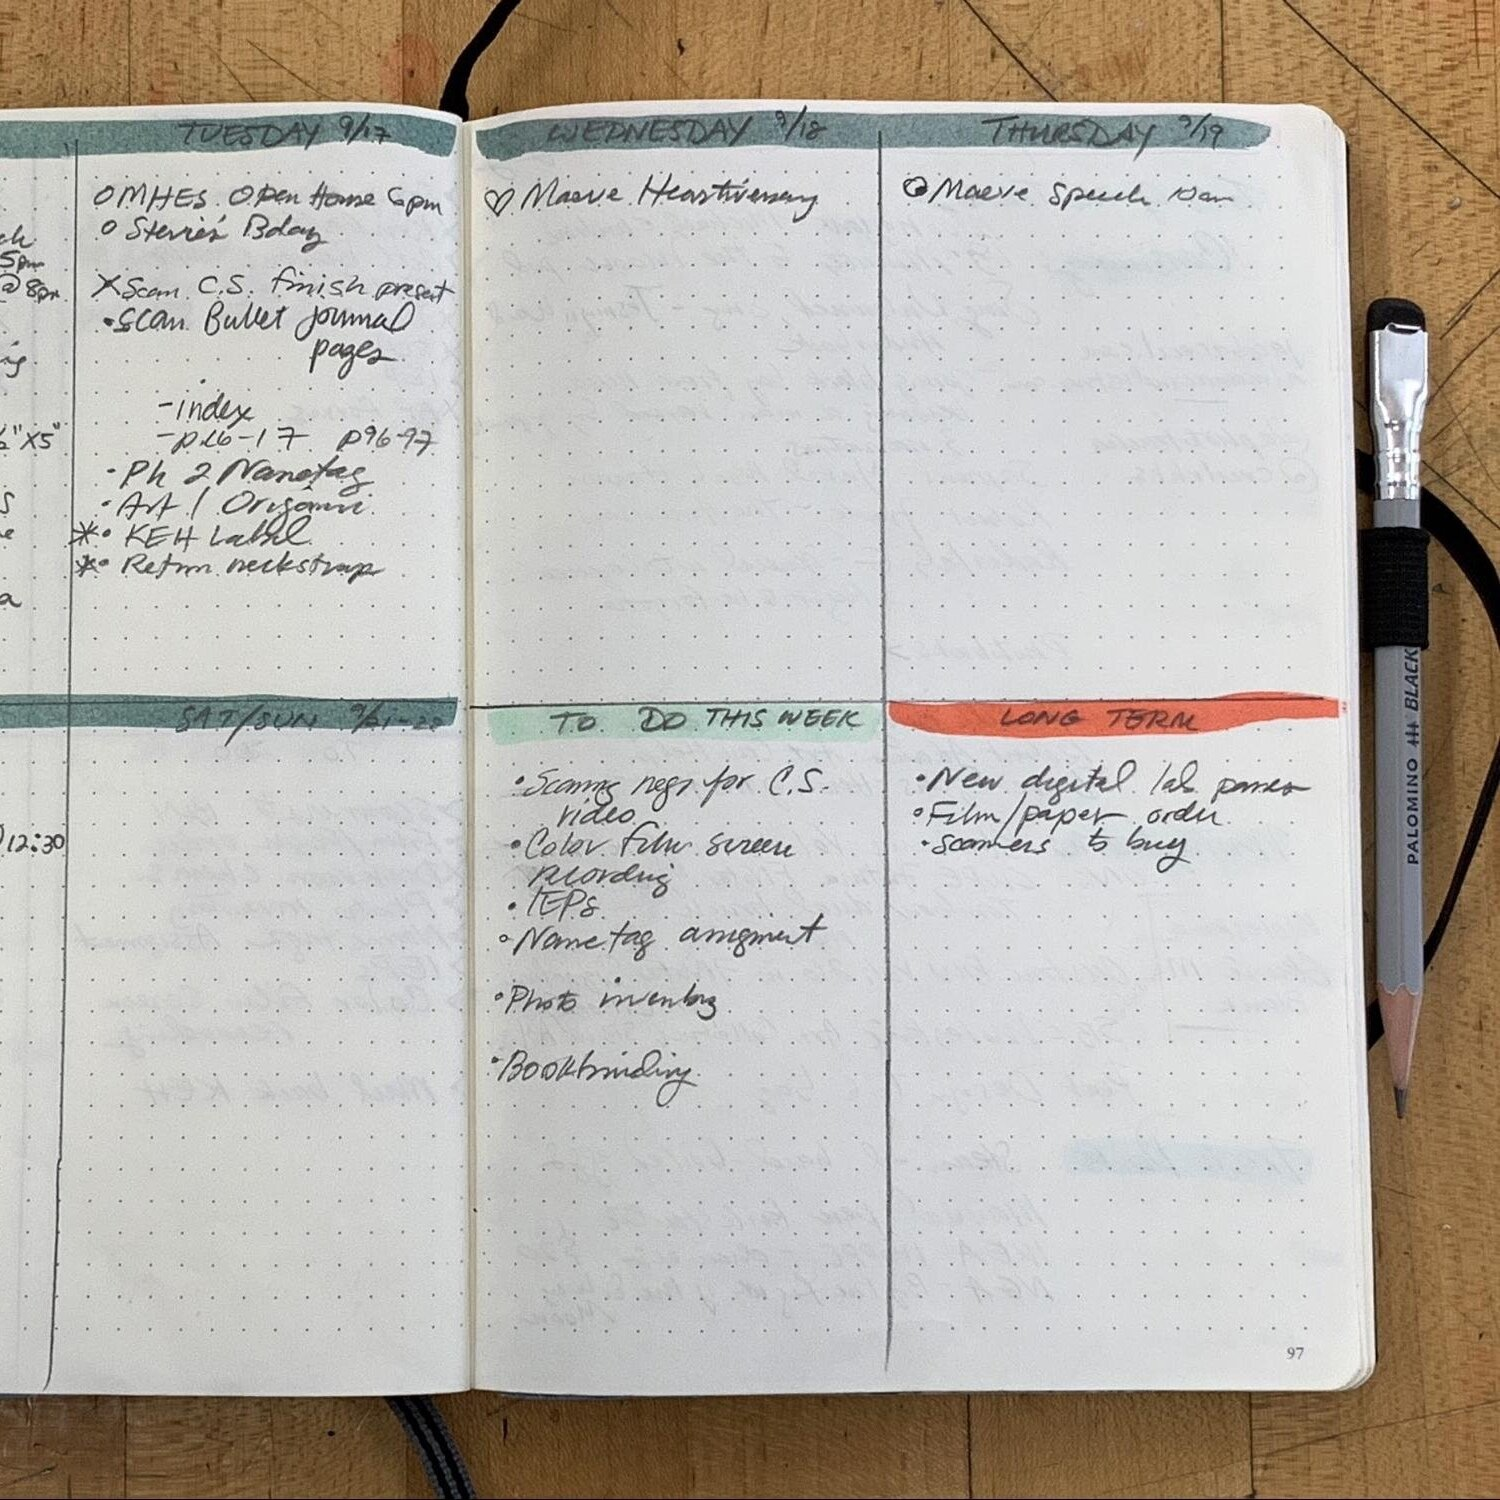 A photo of Jacob Cecil's bullet journal spread.